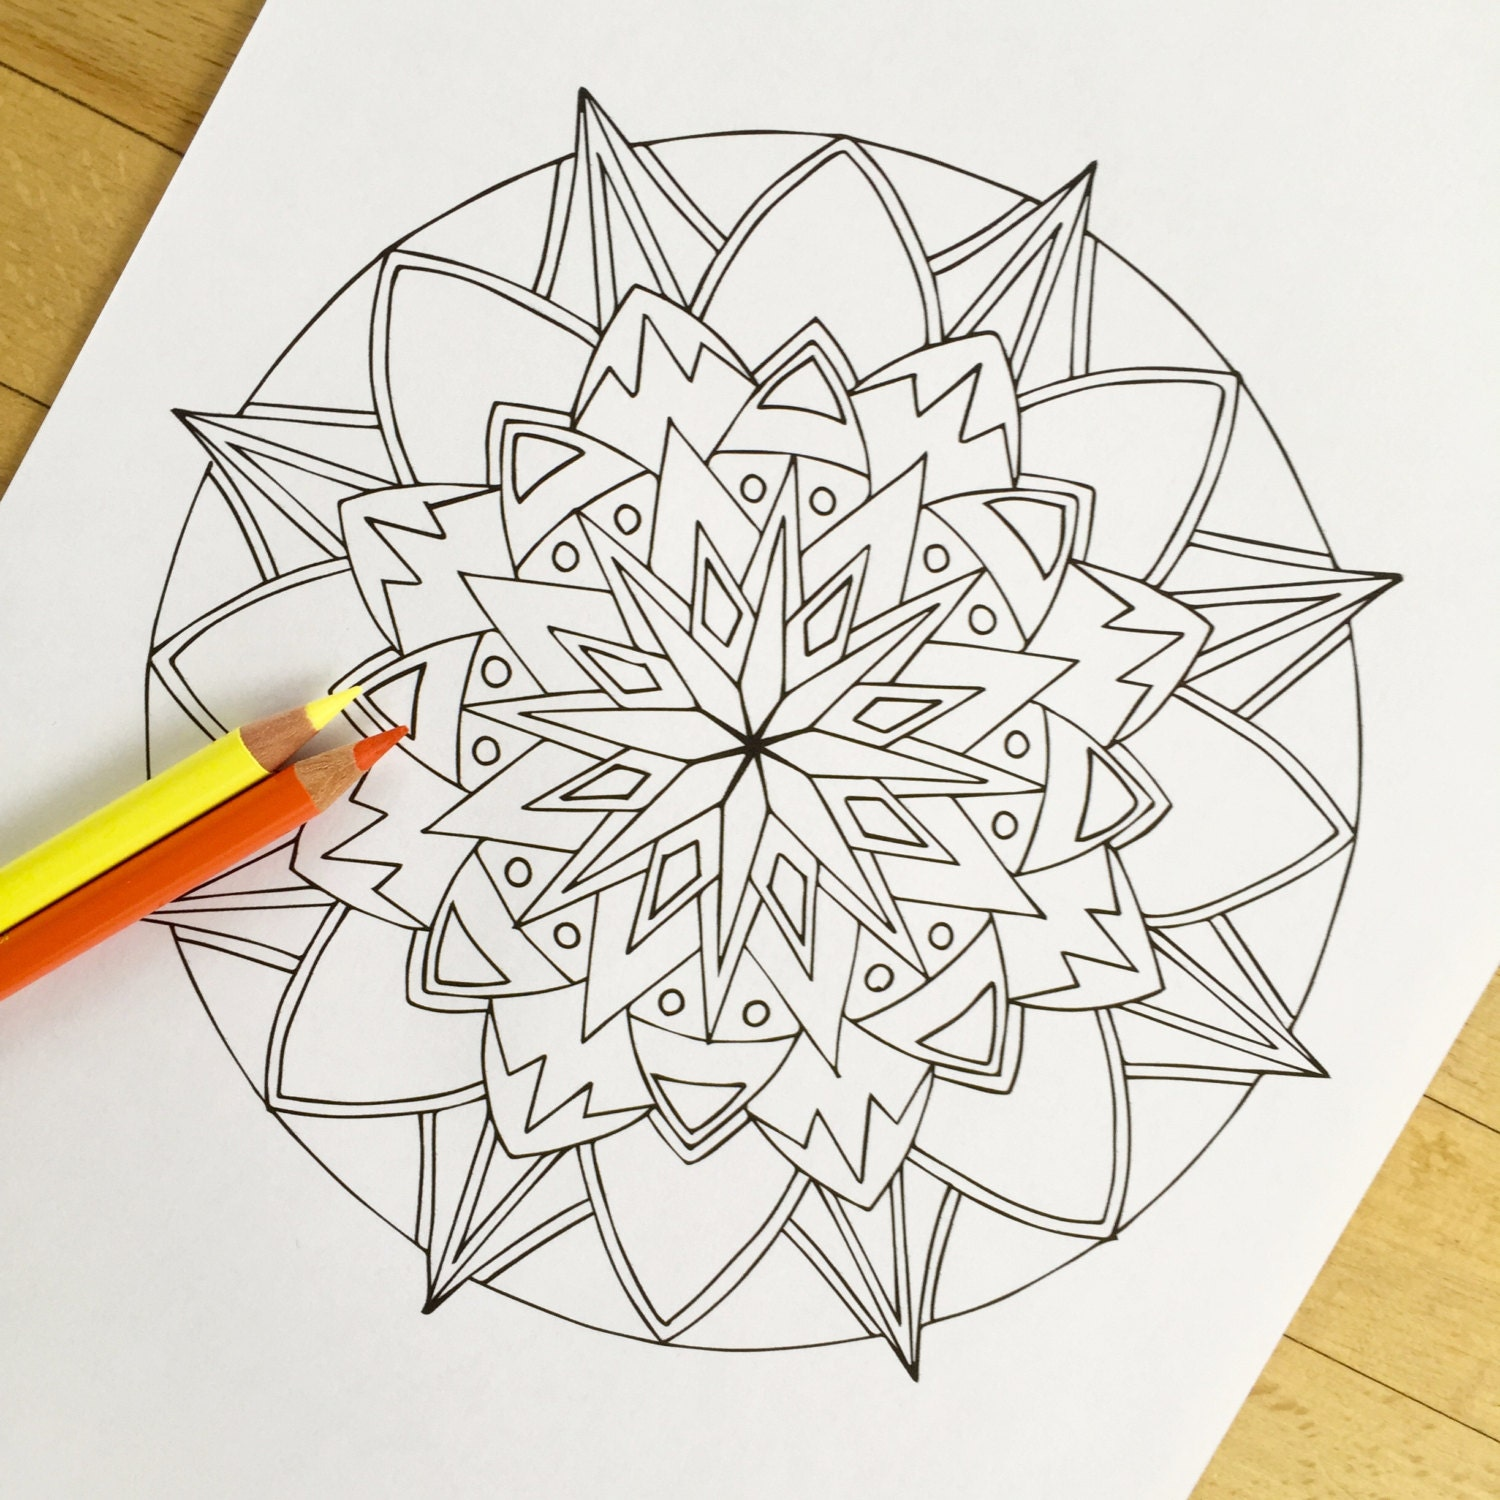 starburst coloring pages - photo#13